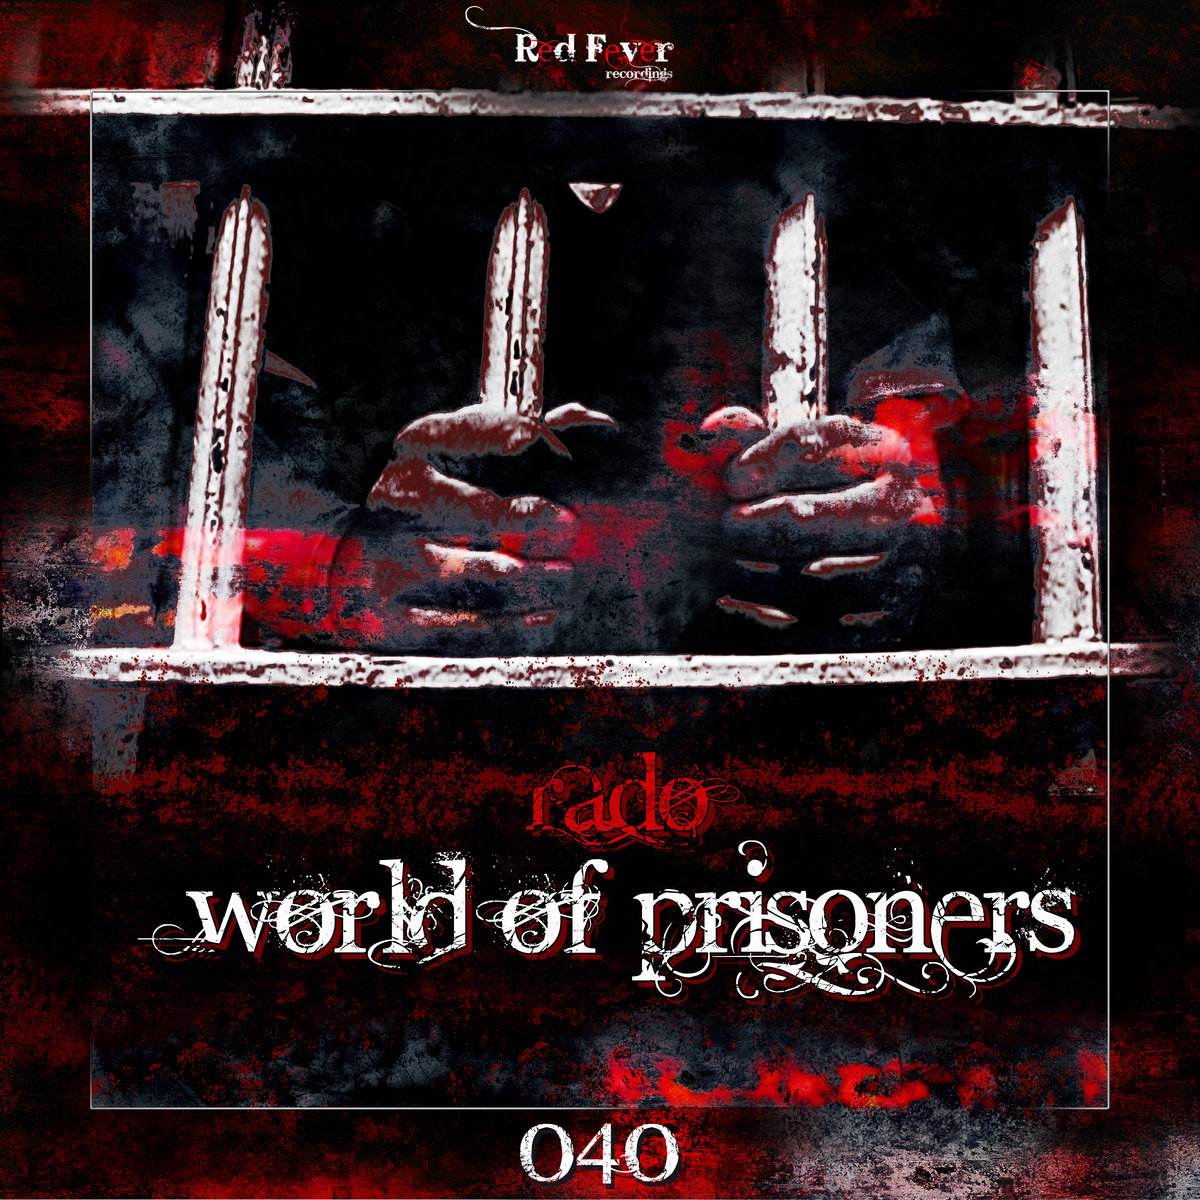 Rado - World Of Prisoners @ 'World Of Prisoners' album (electronic, adk)